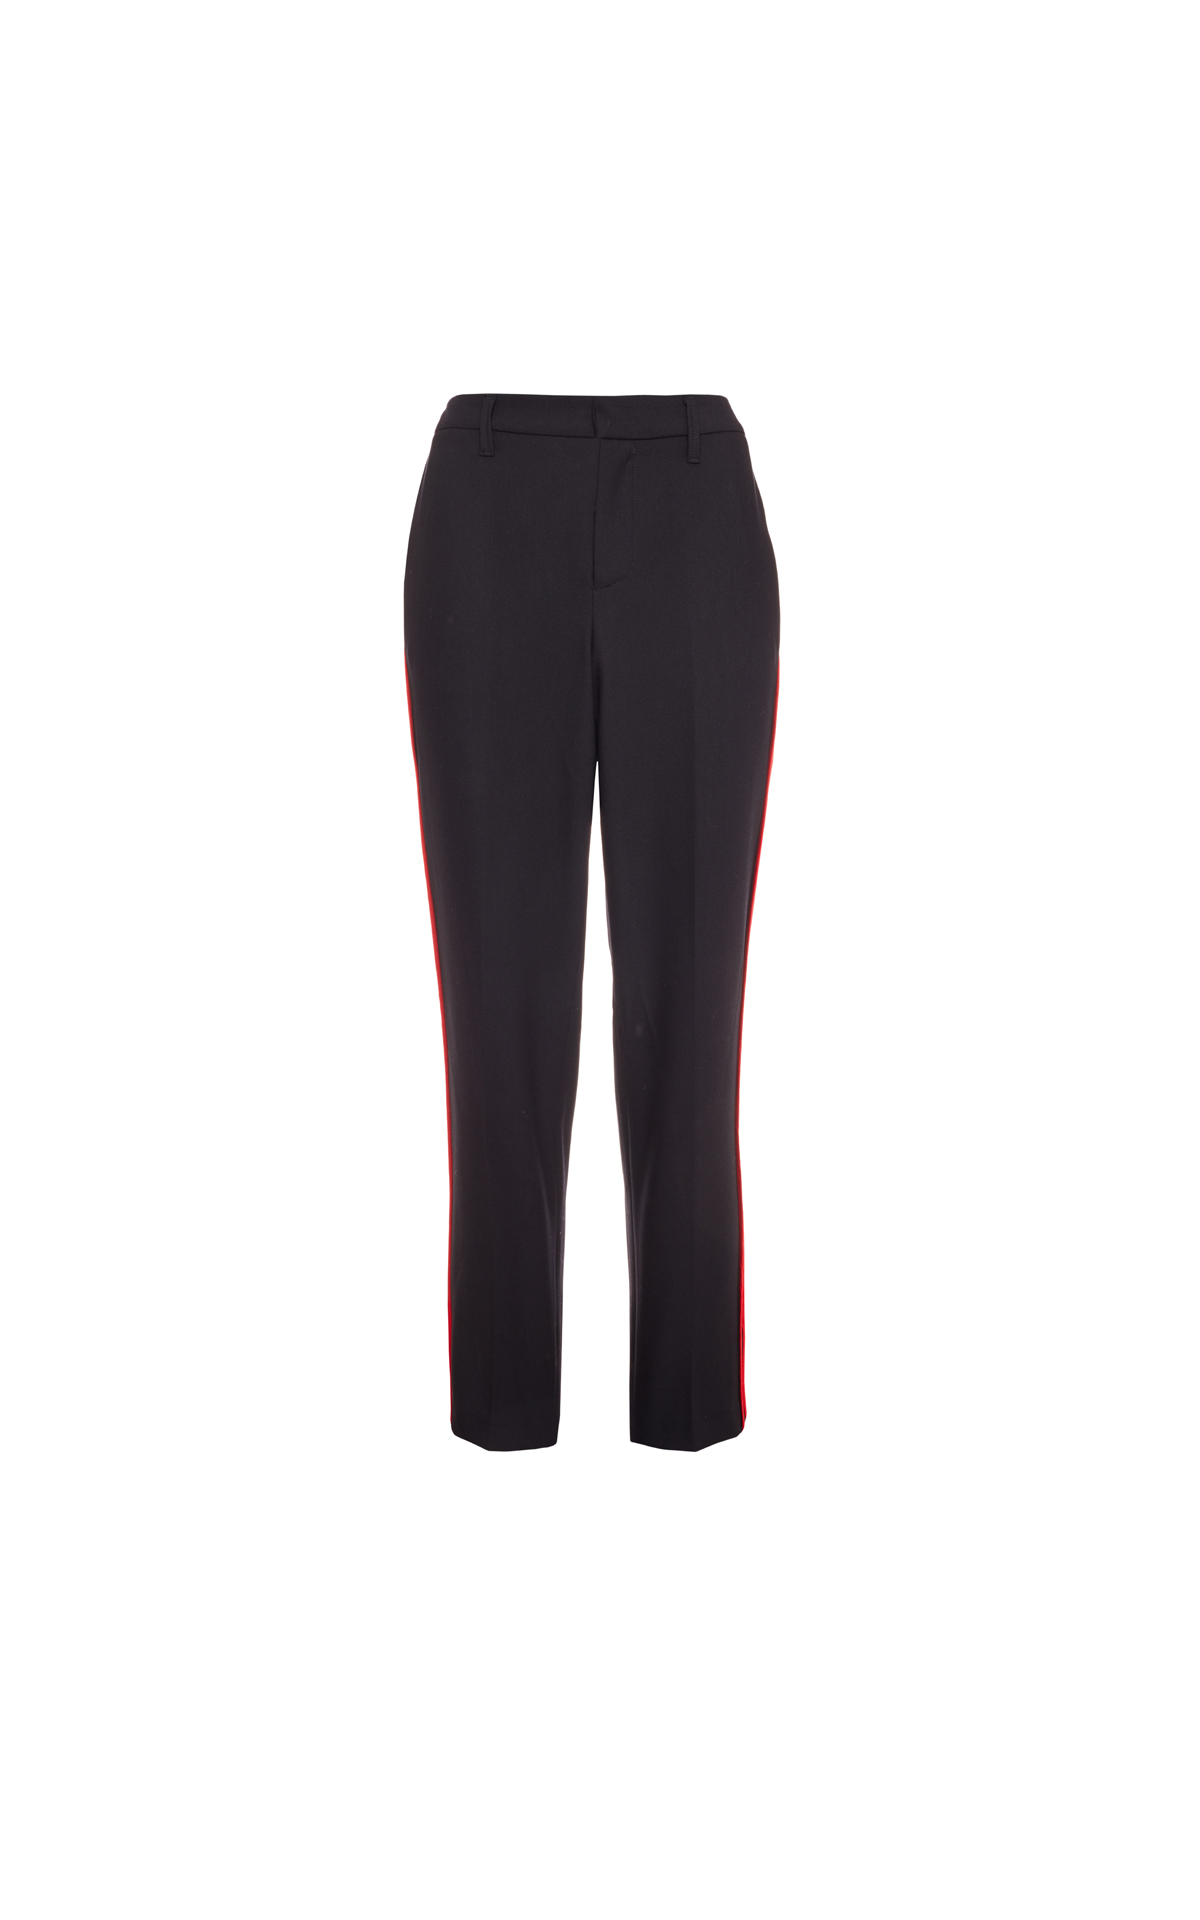 Zadig & Voltaire  Black trousers from Bicester Village